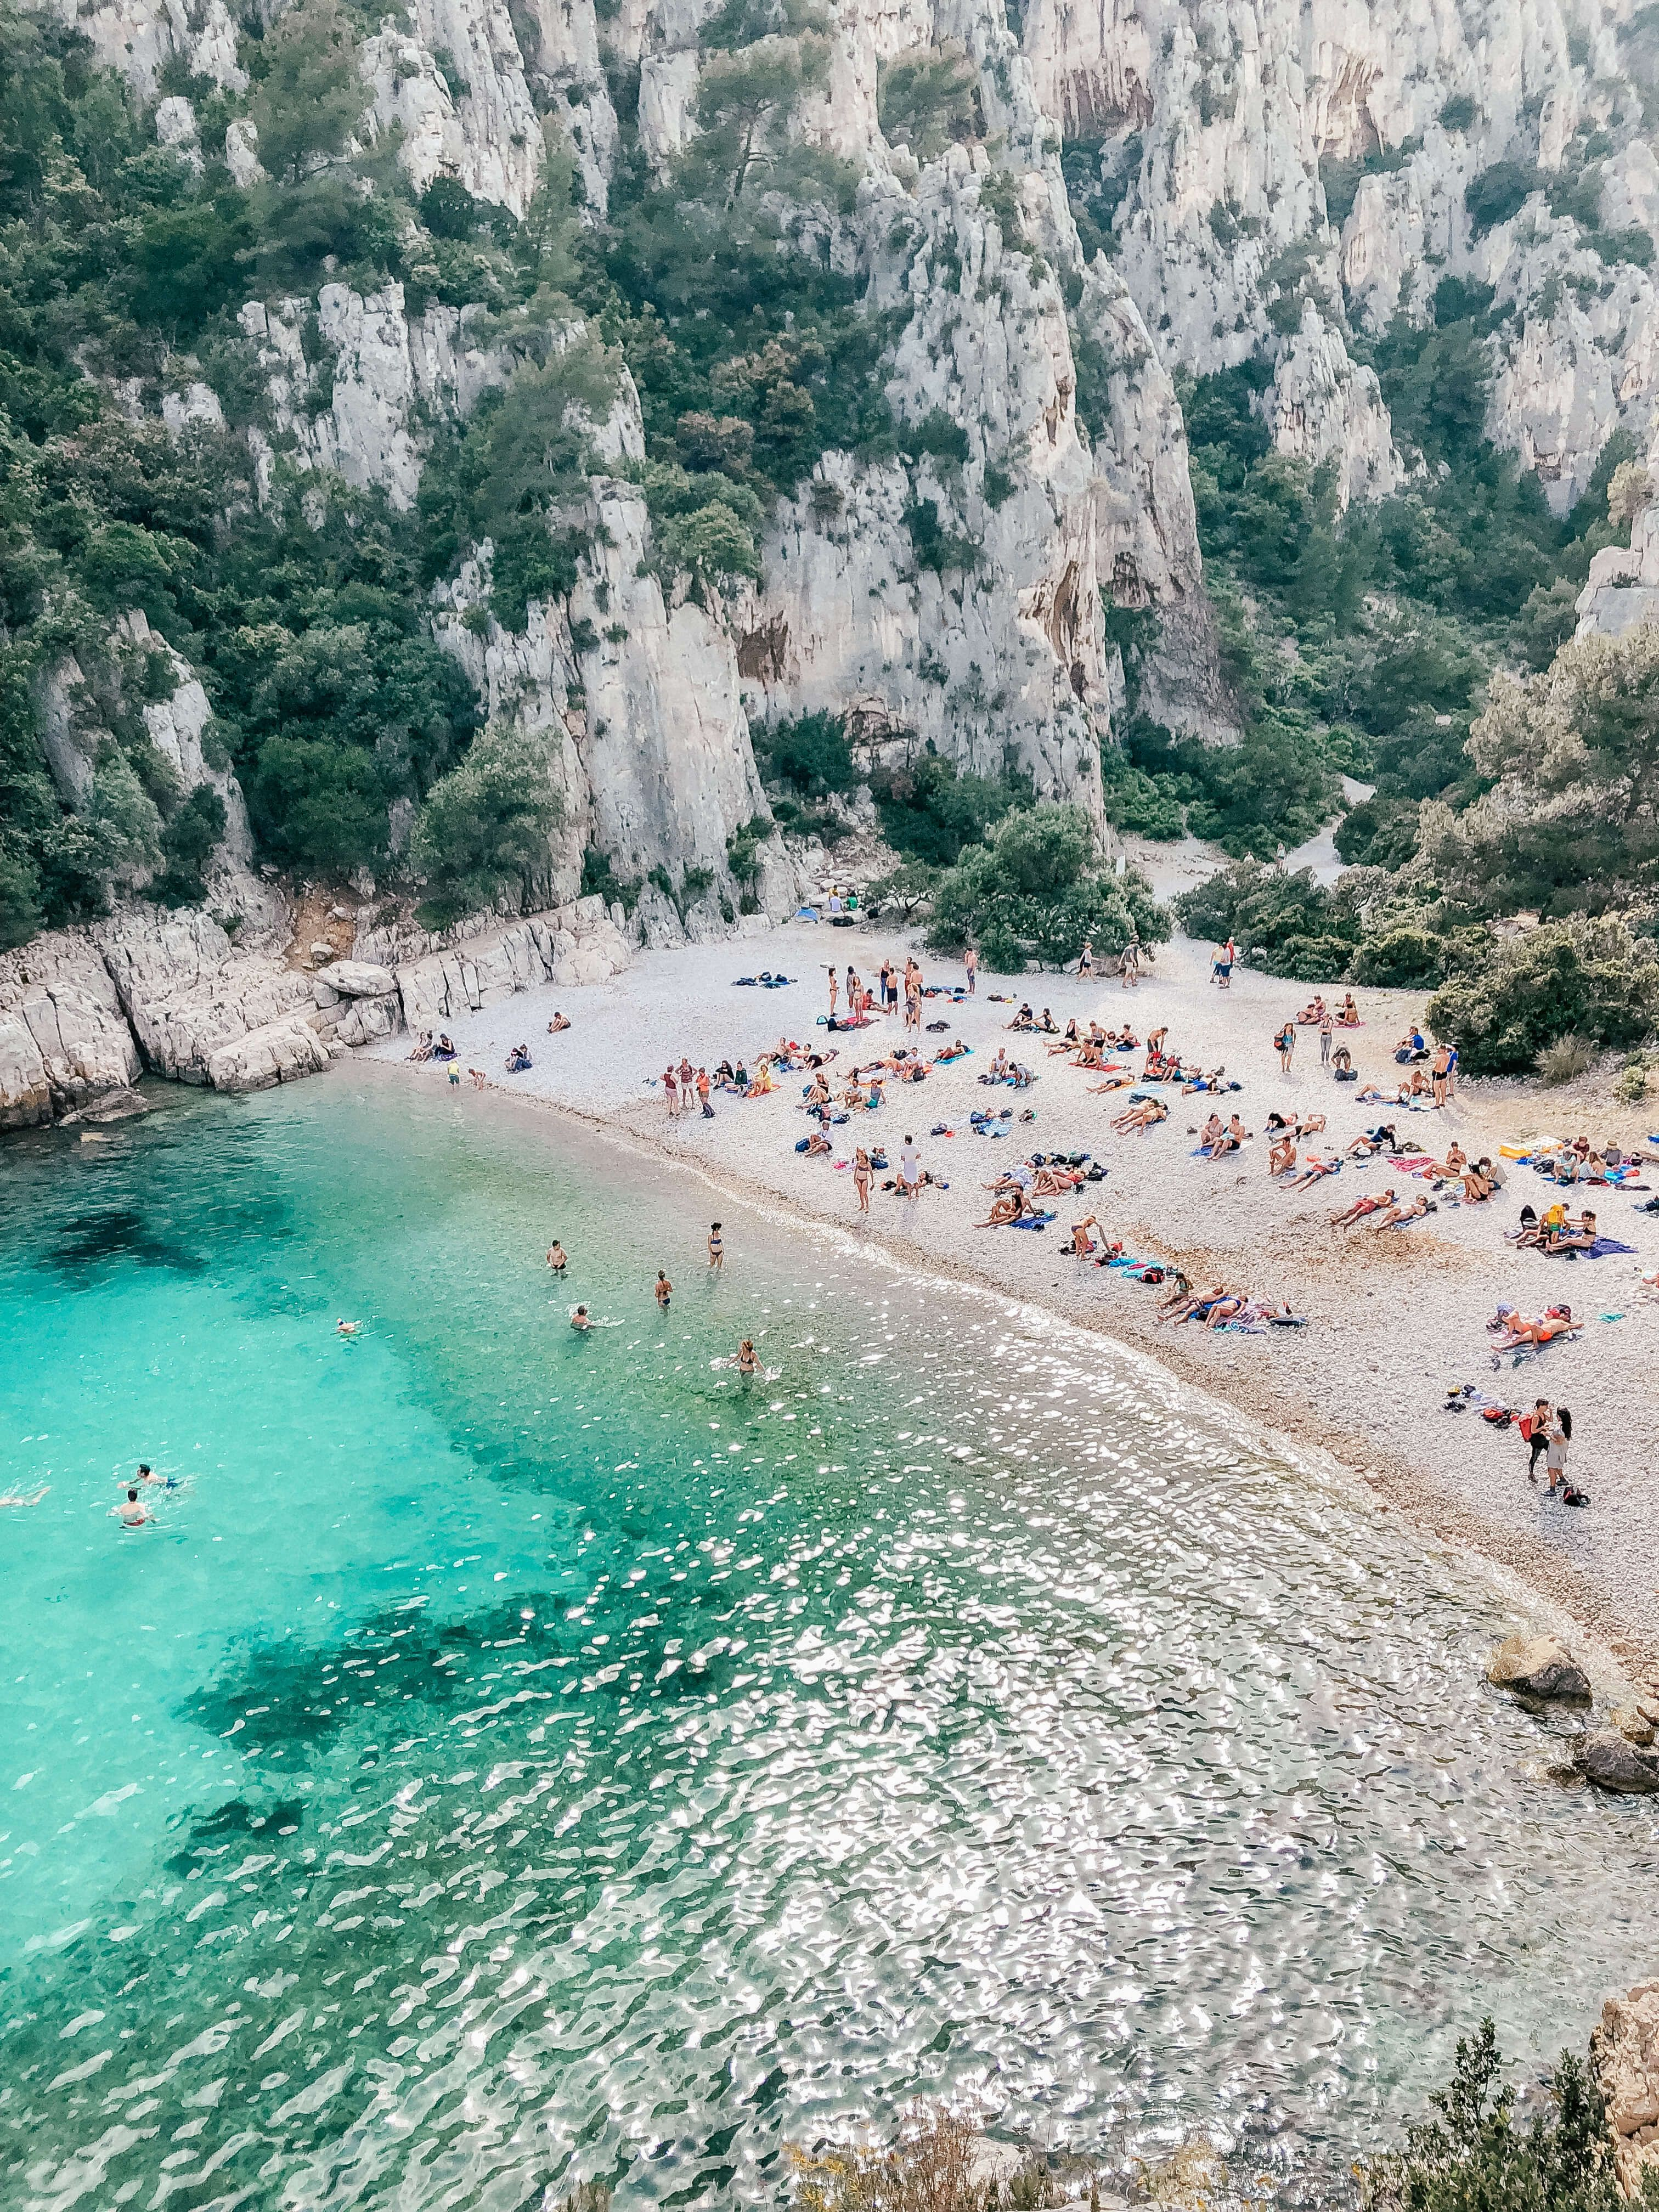 Hiking To The Beautiful Beaches Of Calanques National Park In